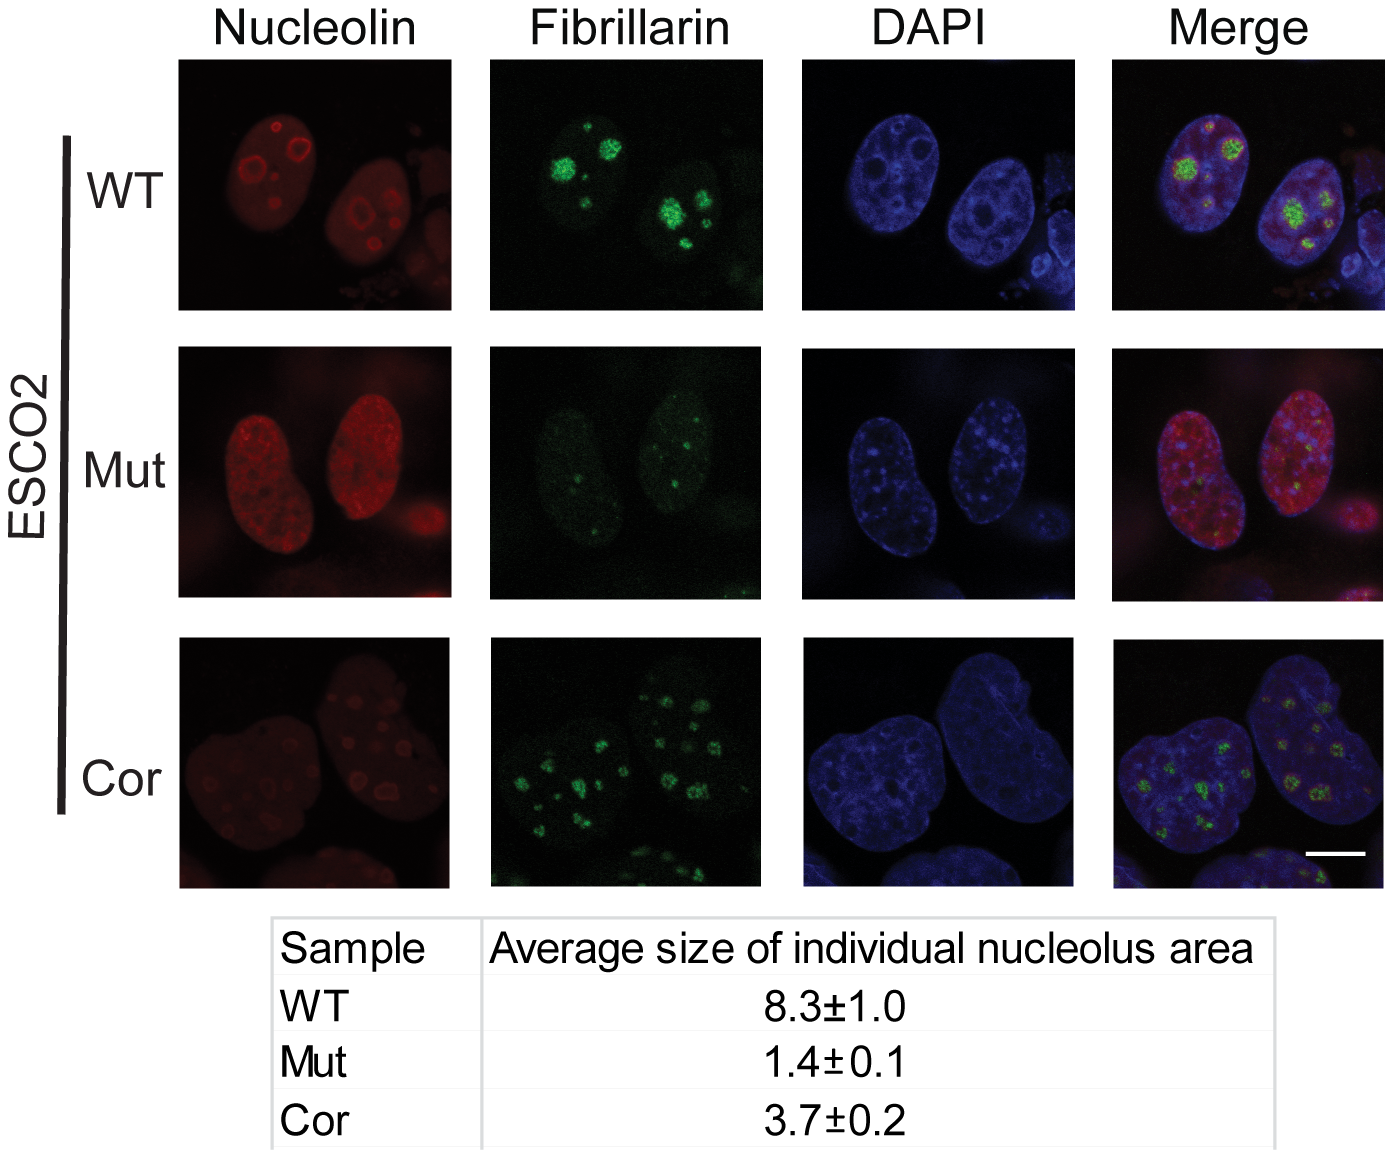 Nucleolar organization was severely disrupted in the immortalized RBS cells.